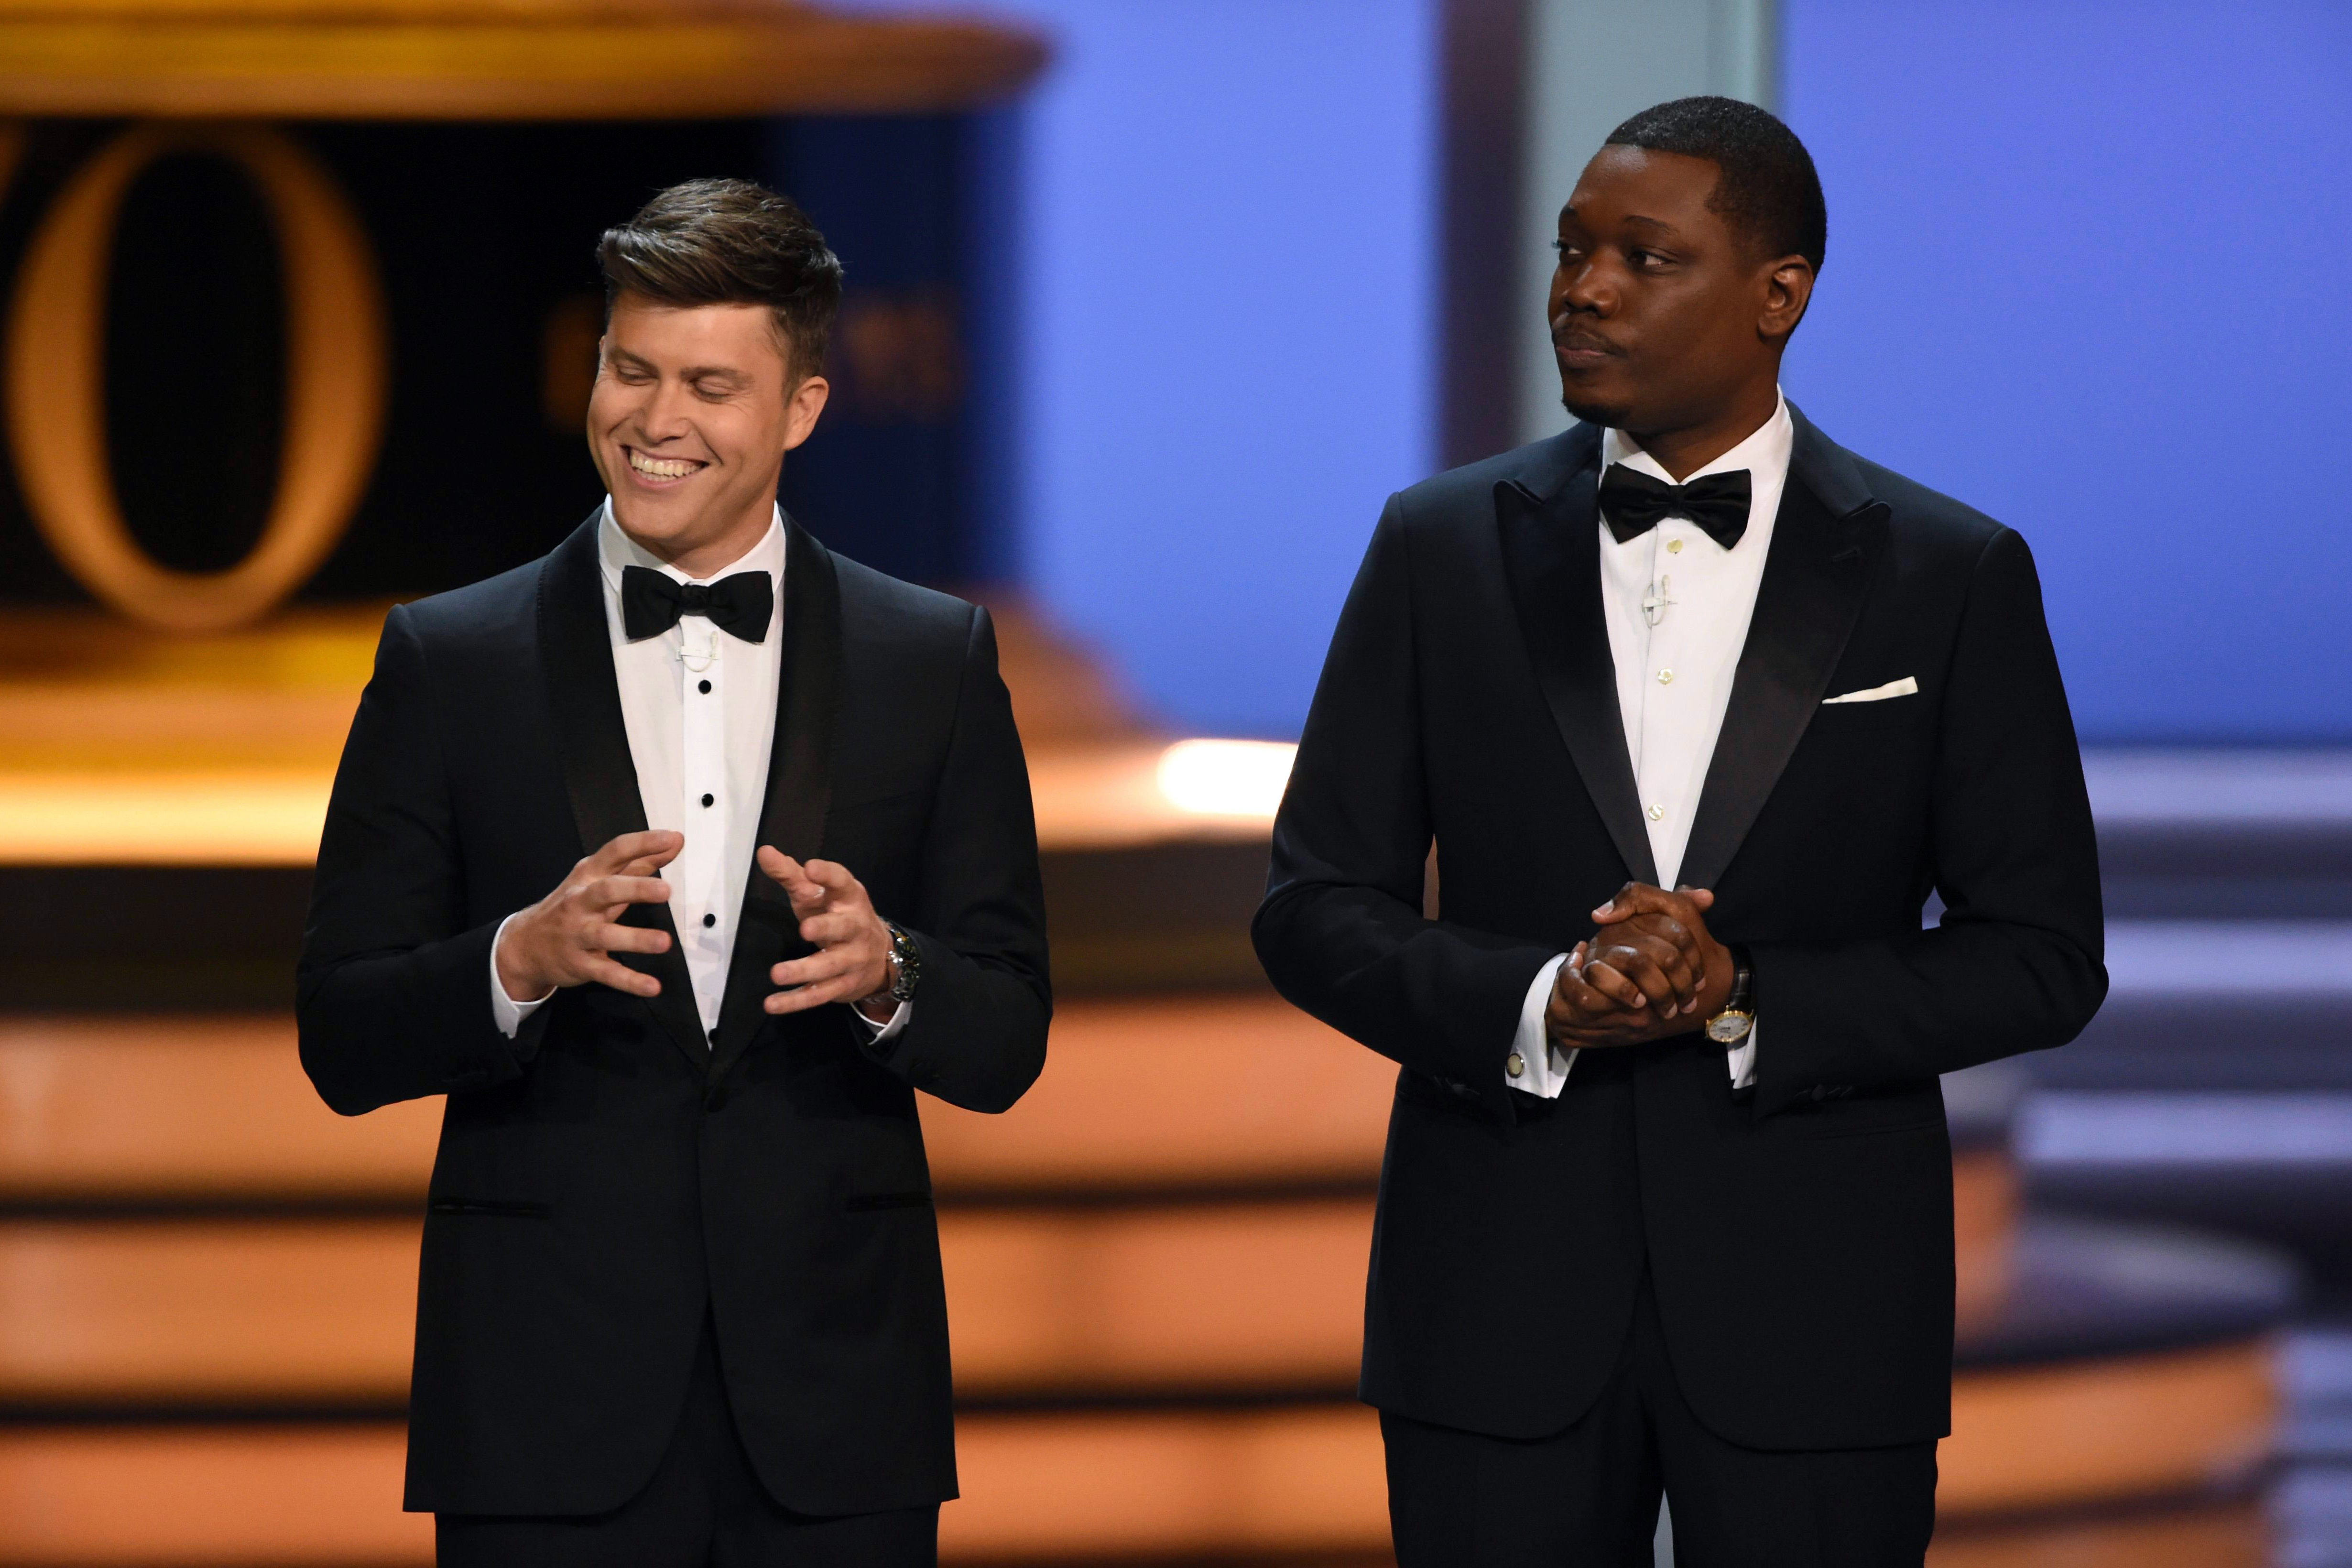 Hosts Colin Jost, Michael Che. Hosts Colin Jost, left, and Michael Che speak at the 70th Primetime Emmy Awards, at the Microsoft Theater in Los Angeles70th Primetime Emmy Awards - Show, Los Angeles, USA - 17 Sep 2018